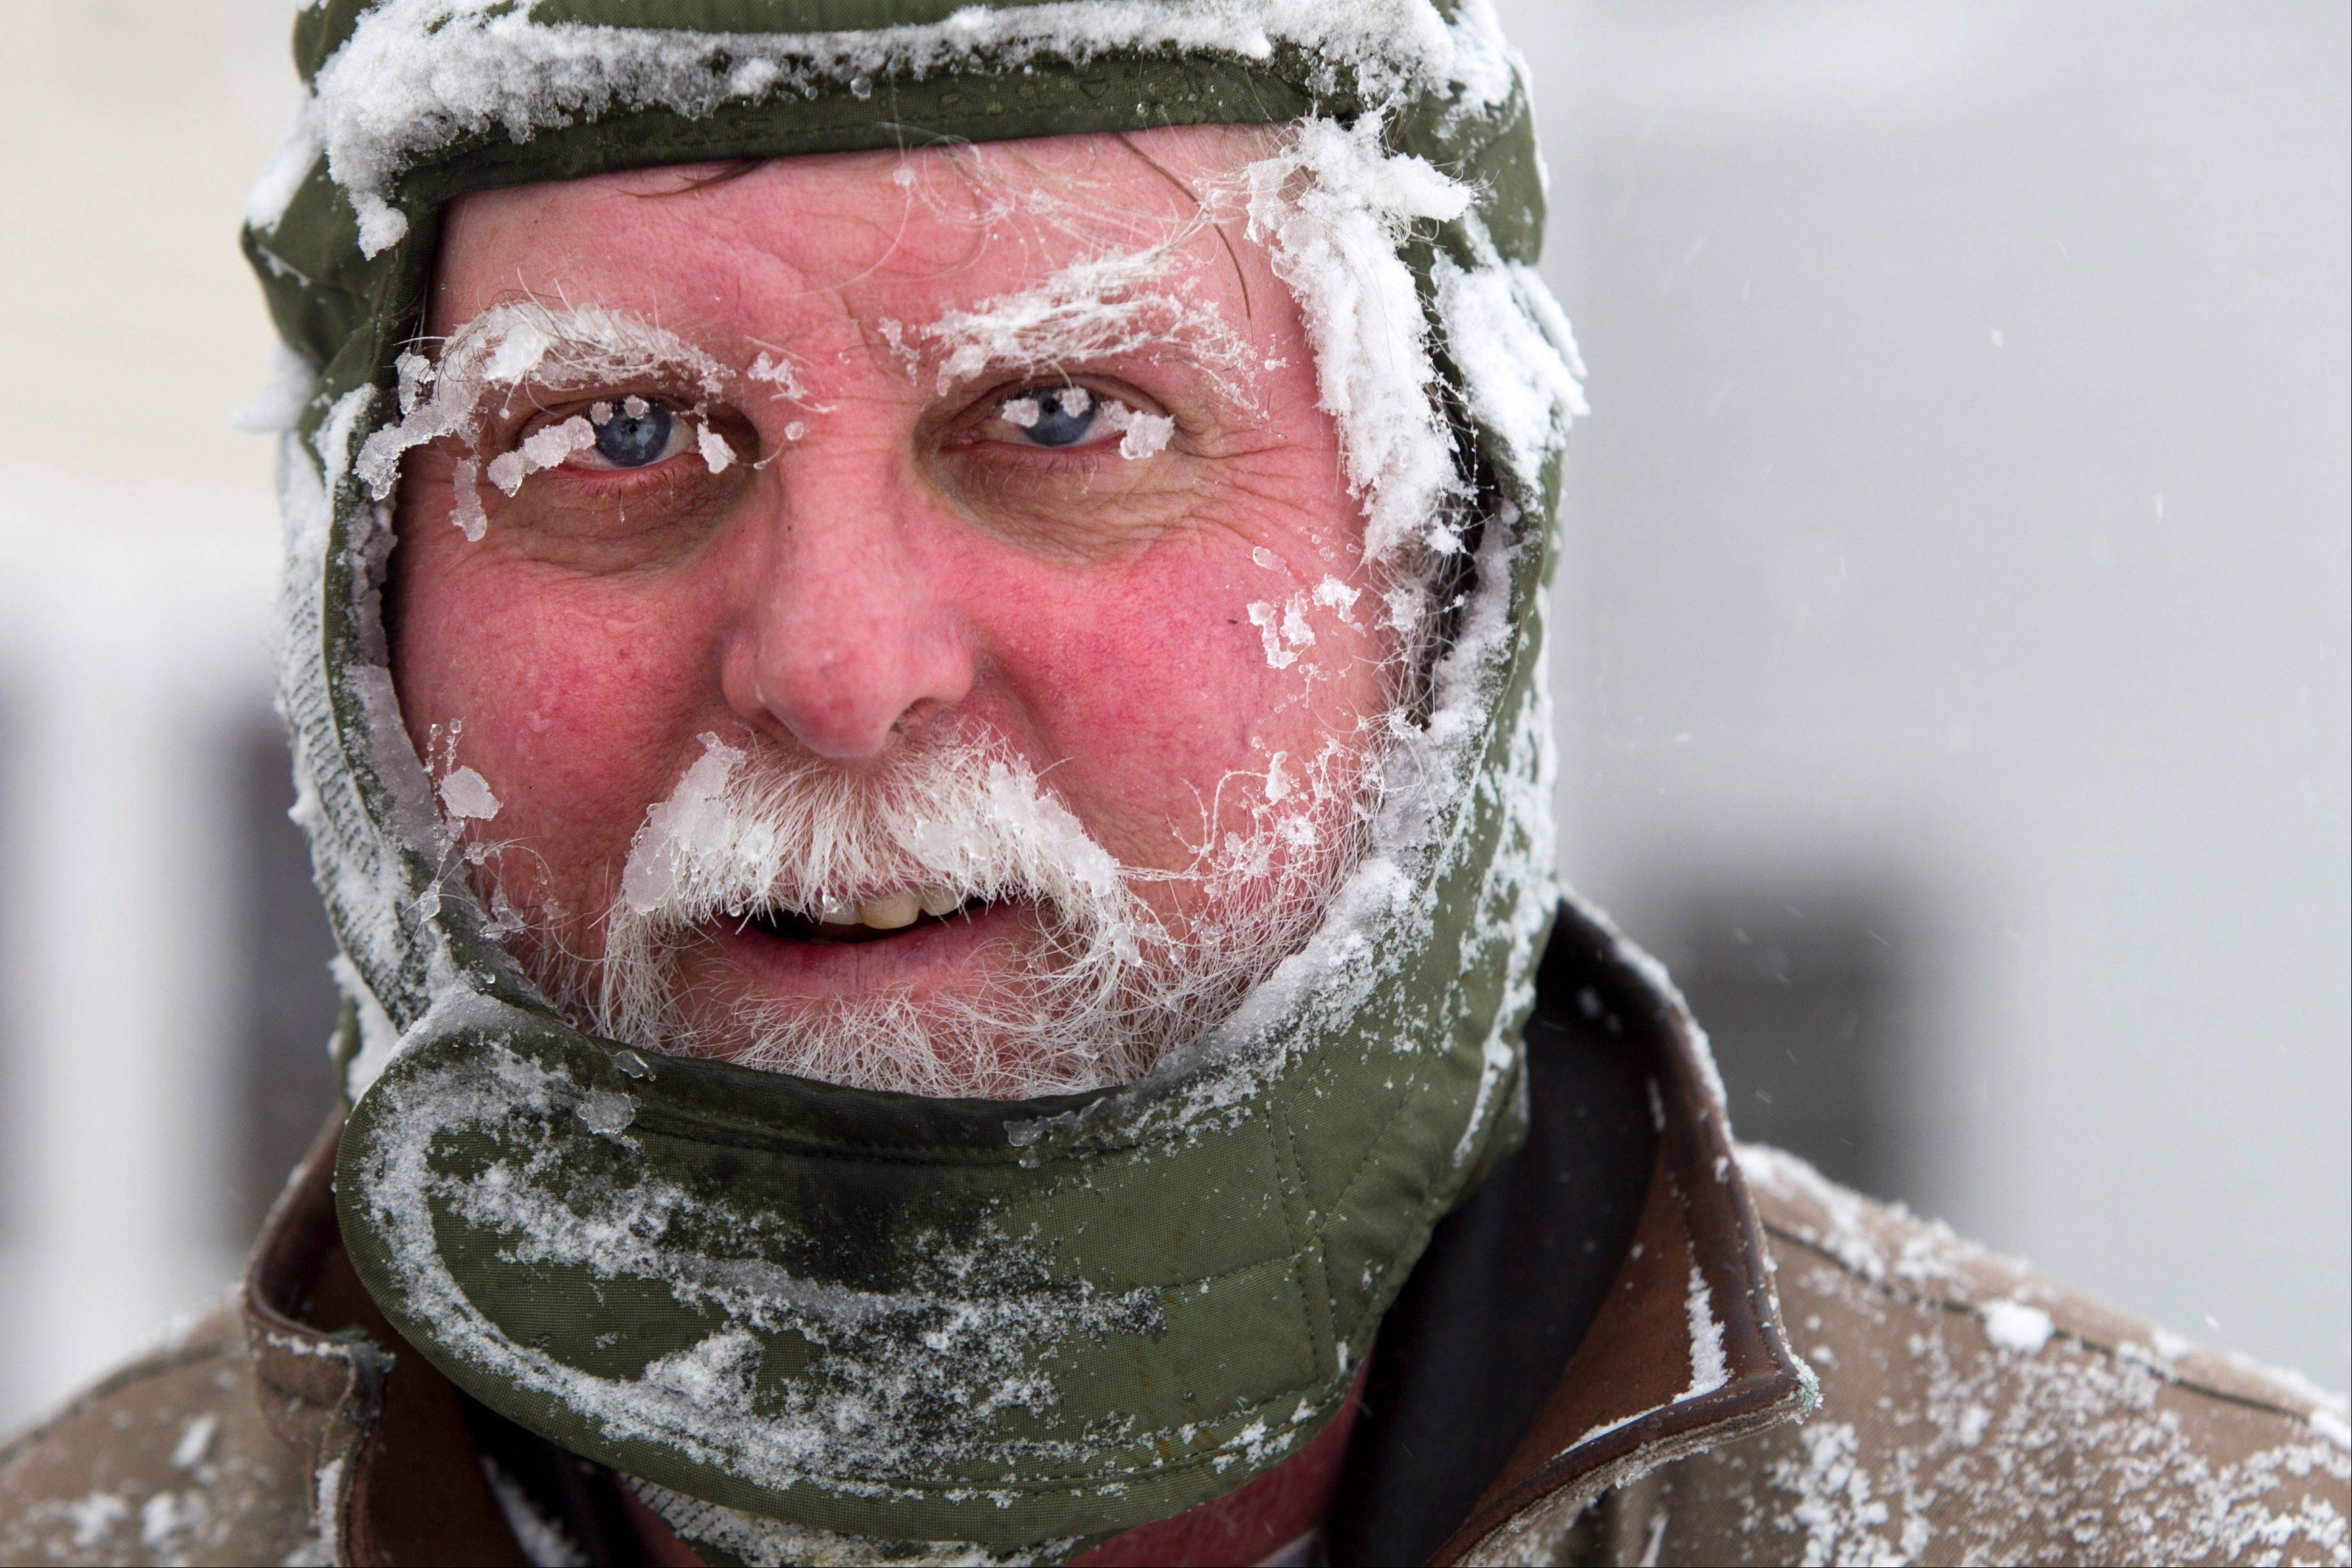 Ice clings to Ken Anderson's eyebrows and mustache as he uses a snowblower during a blizzard, Saturday, Feb. 9, 2013, in Portland, Maine. The storm dumped more than 30 inches of snow as of Saturday afternoon, breaking the record for the biggest storm on record.